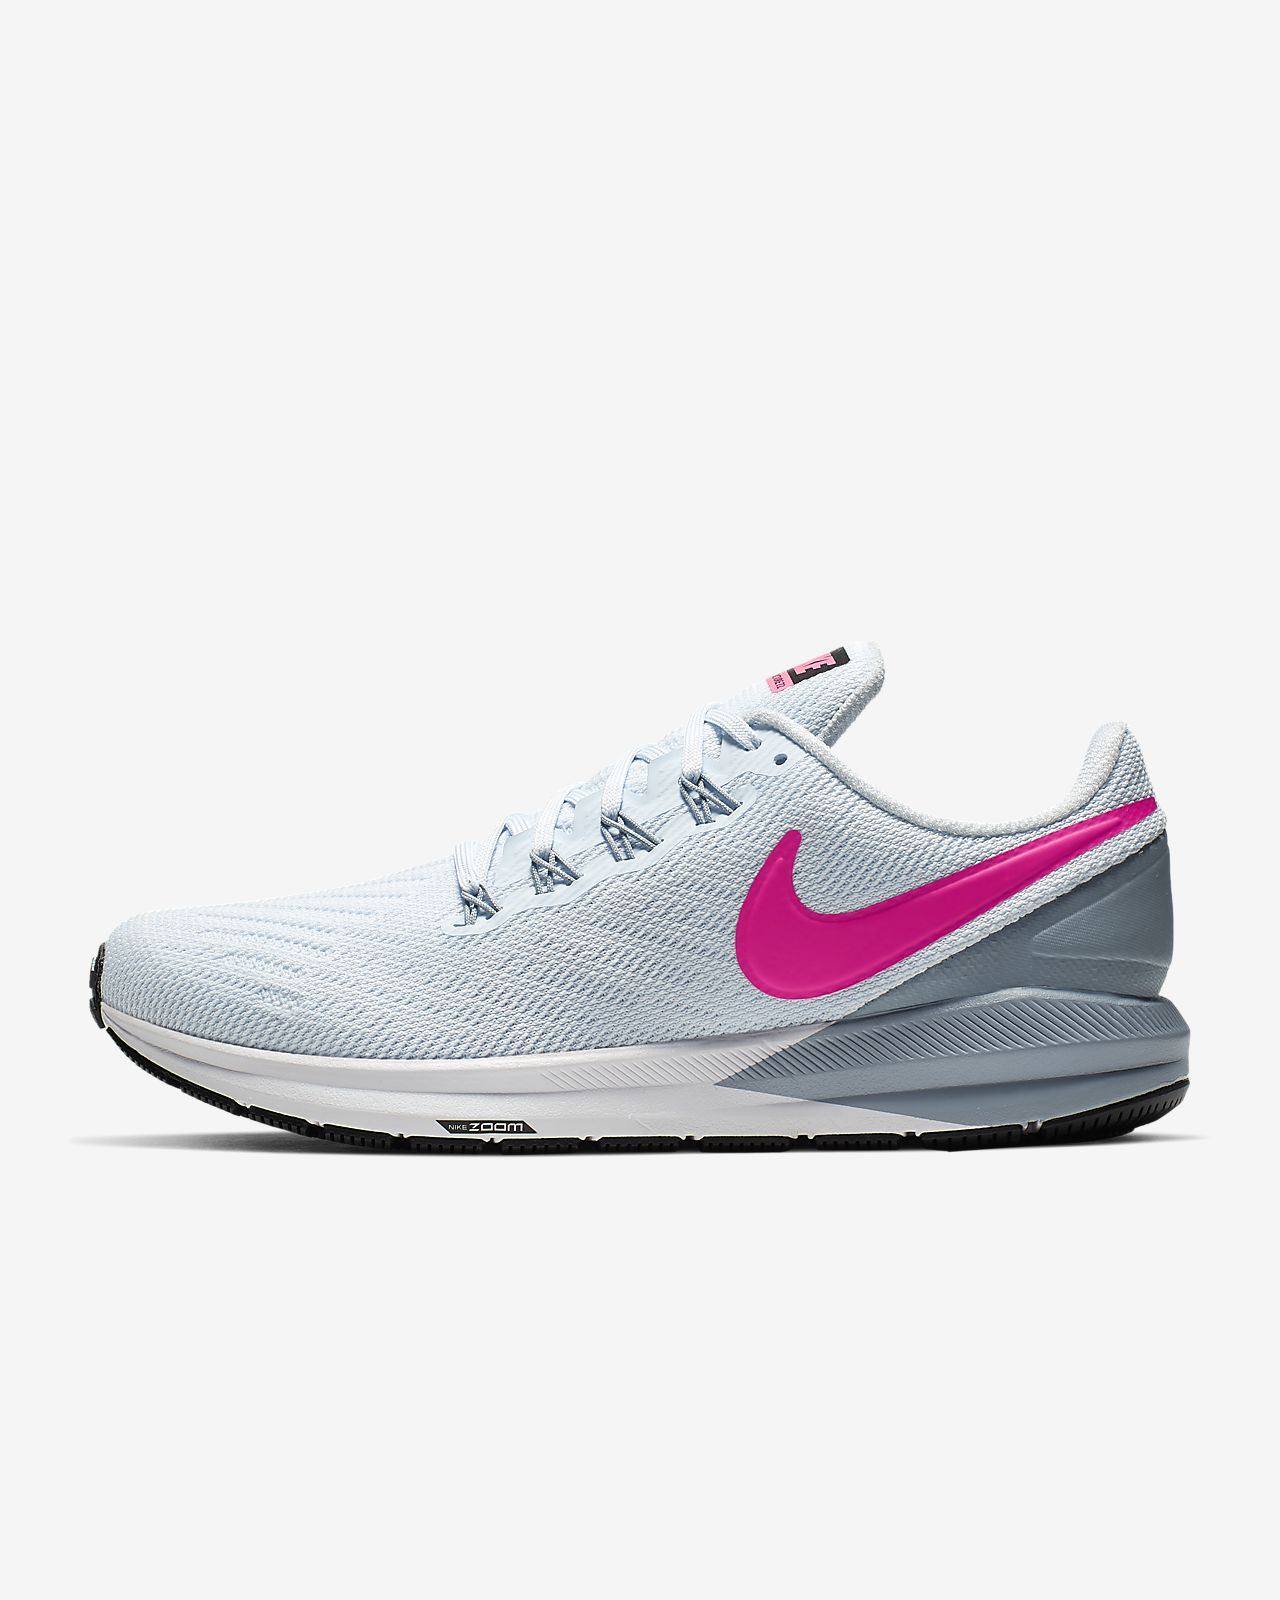 615bddfd3ff4a Nike Air Zoom Structure 22 Women s Running Shoe. Nike.com